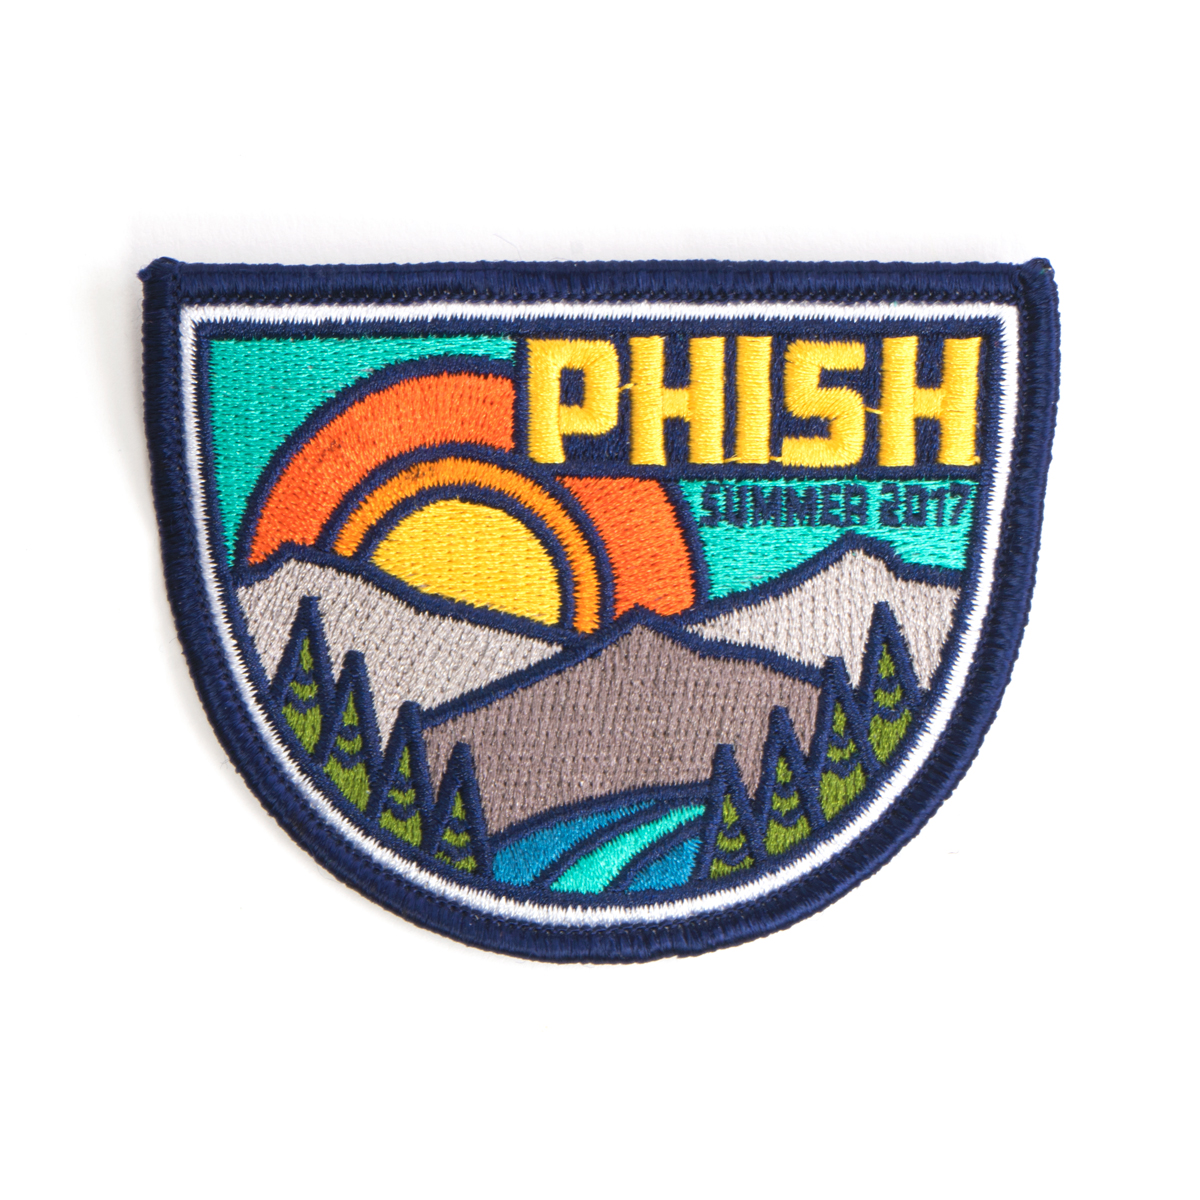 Great Outdoors Patch